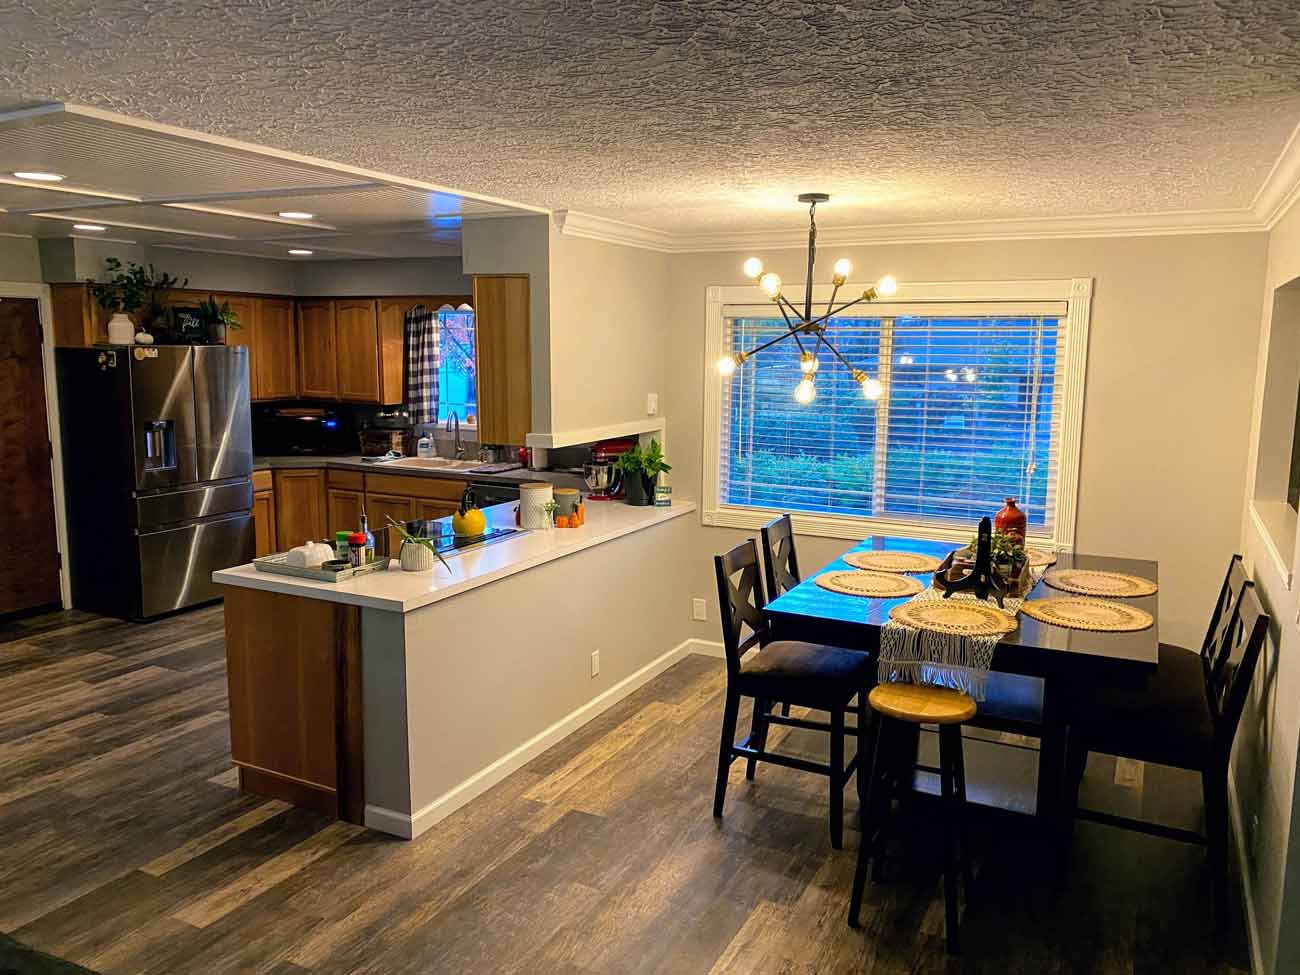 Home Remodel Dining Room Kitchen Update